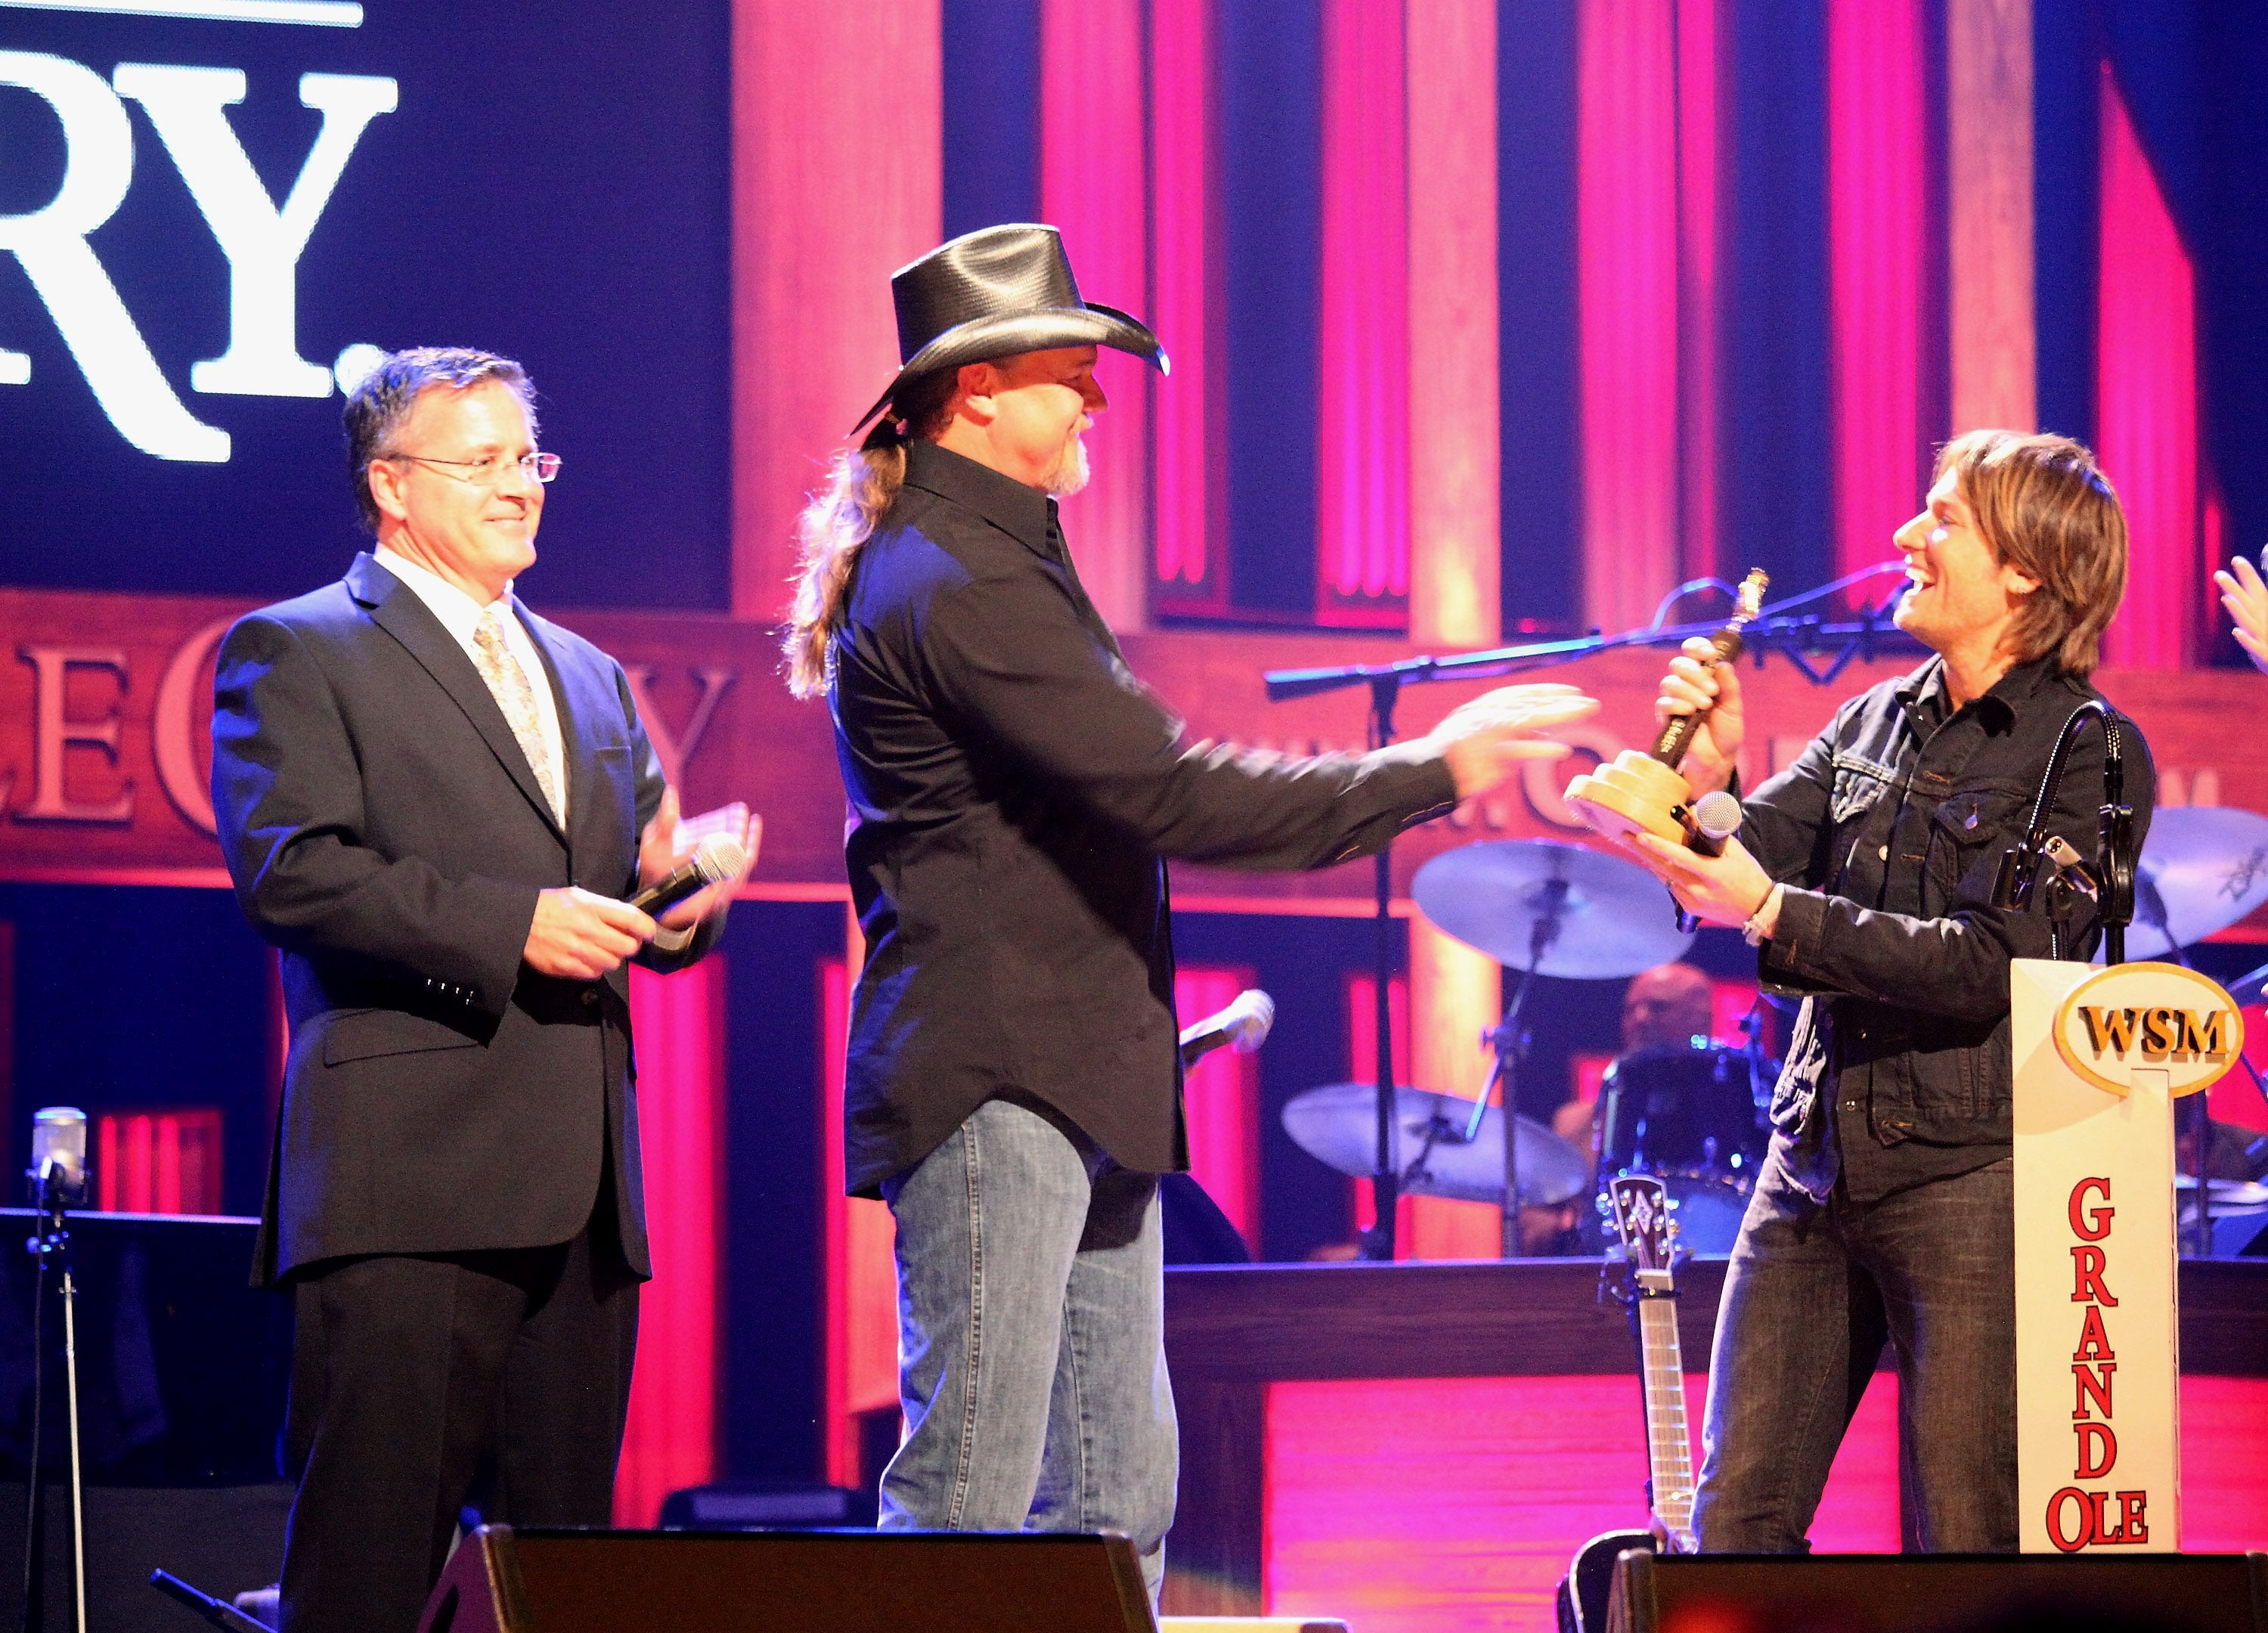 NASHVILLE, TN - APRIL 21: Pete Fisher, Grand Ole Opry Vice President and General Manager, and Trace Adkins inducts Keith Urban into The Grand Ole Opry on April 21, 2012 in Nashville, Tennessee. (Photo by Tony R. Phipps/WireImage)